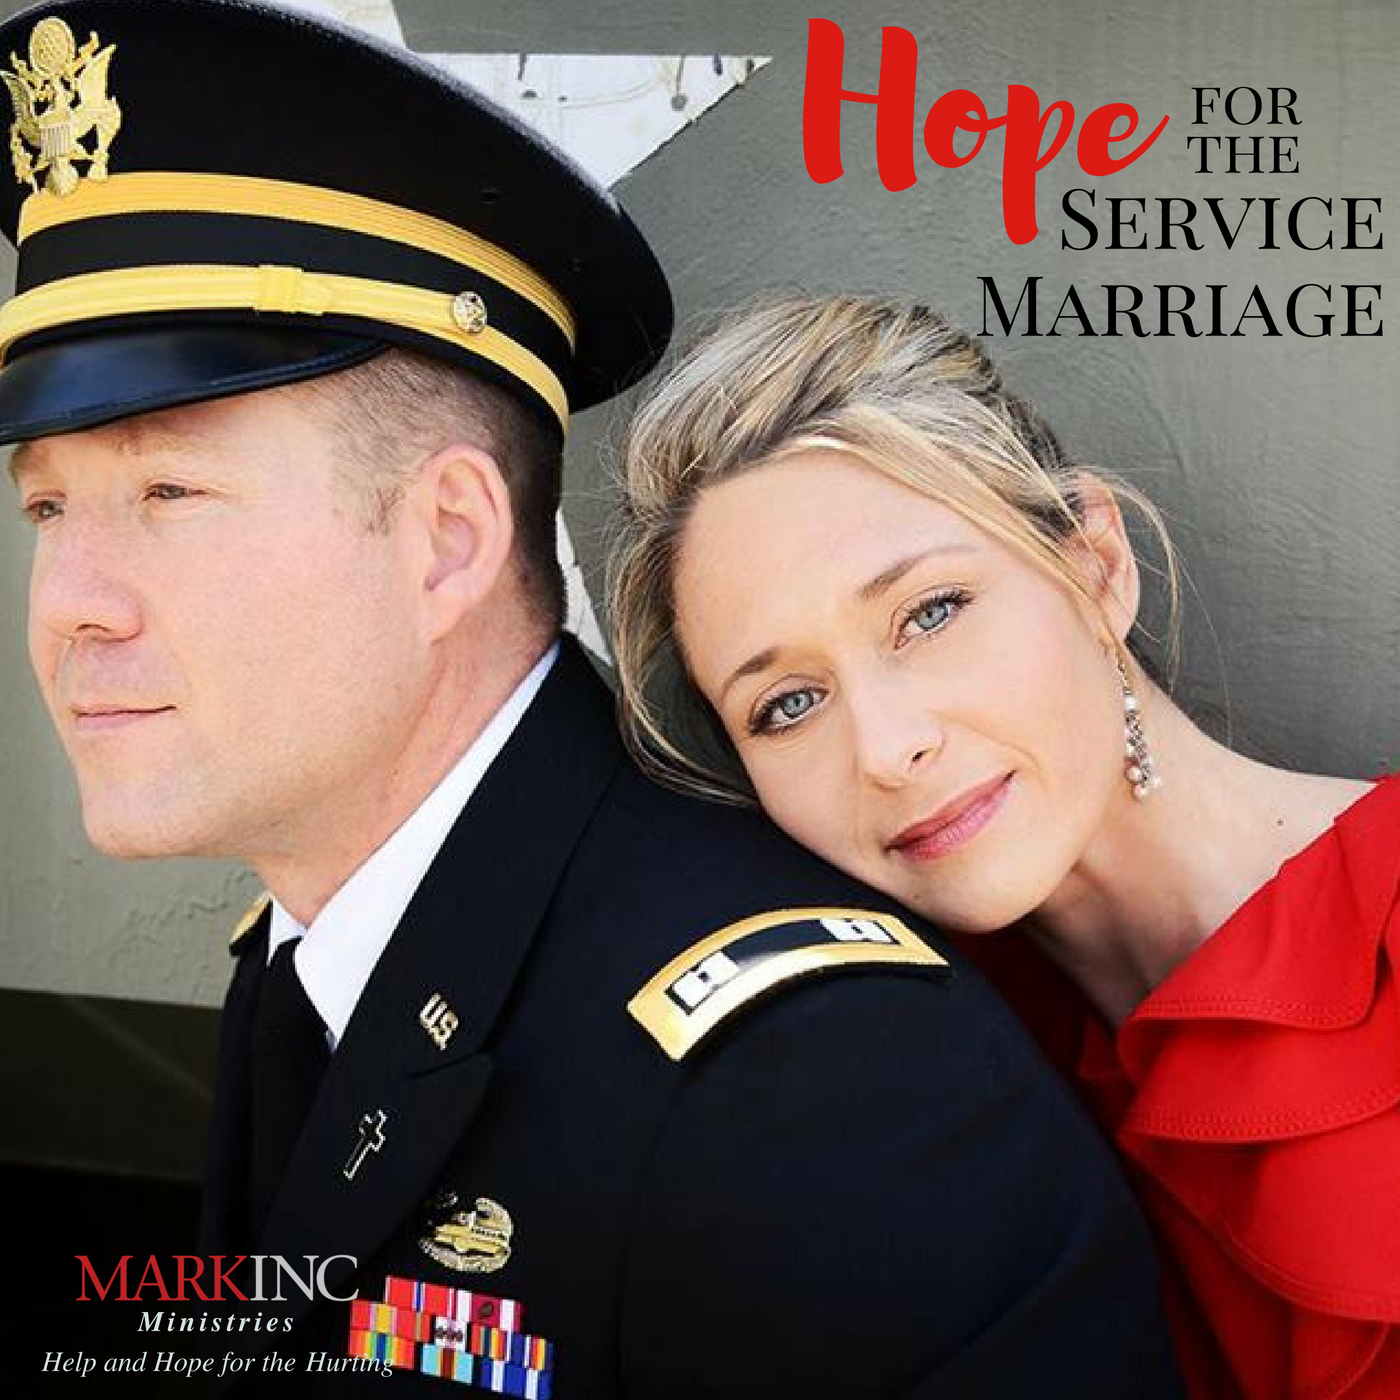 H&H Hope for the Service Marriage.jpg